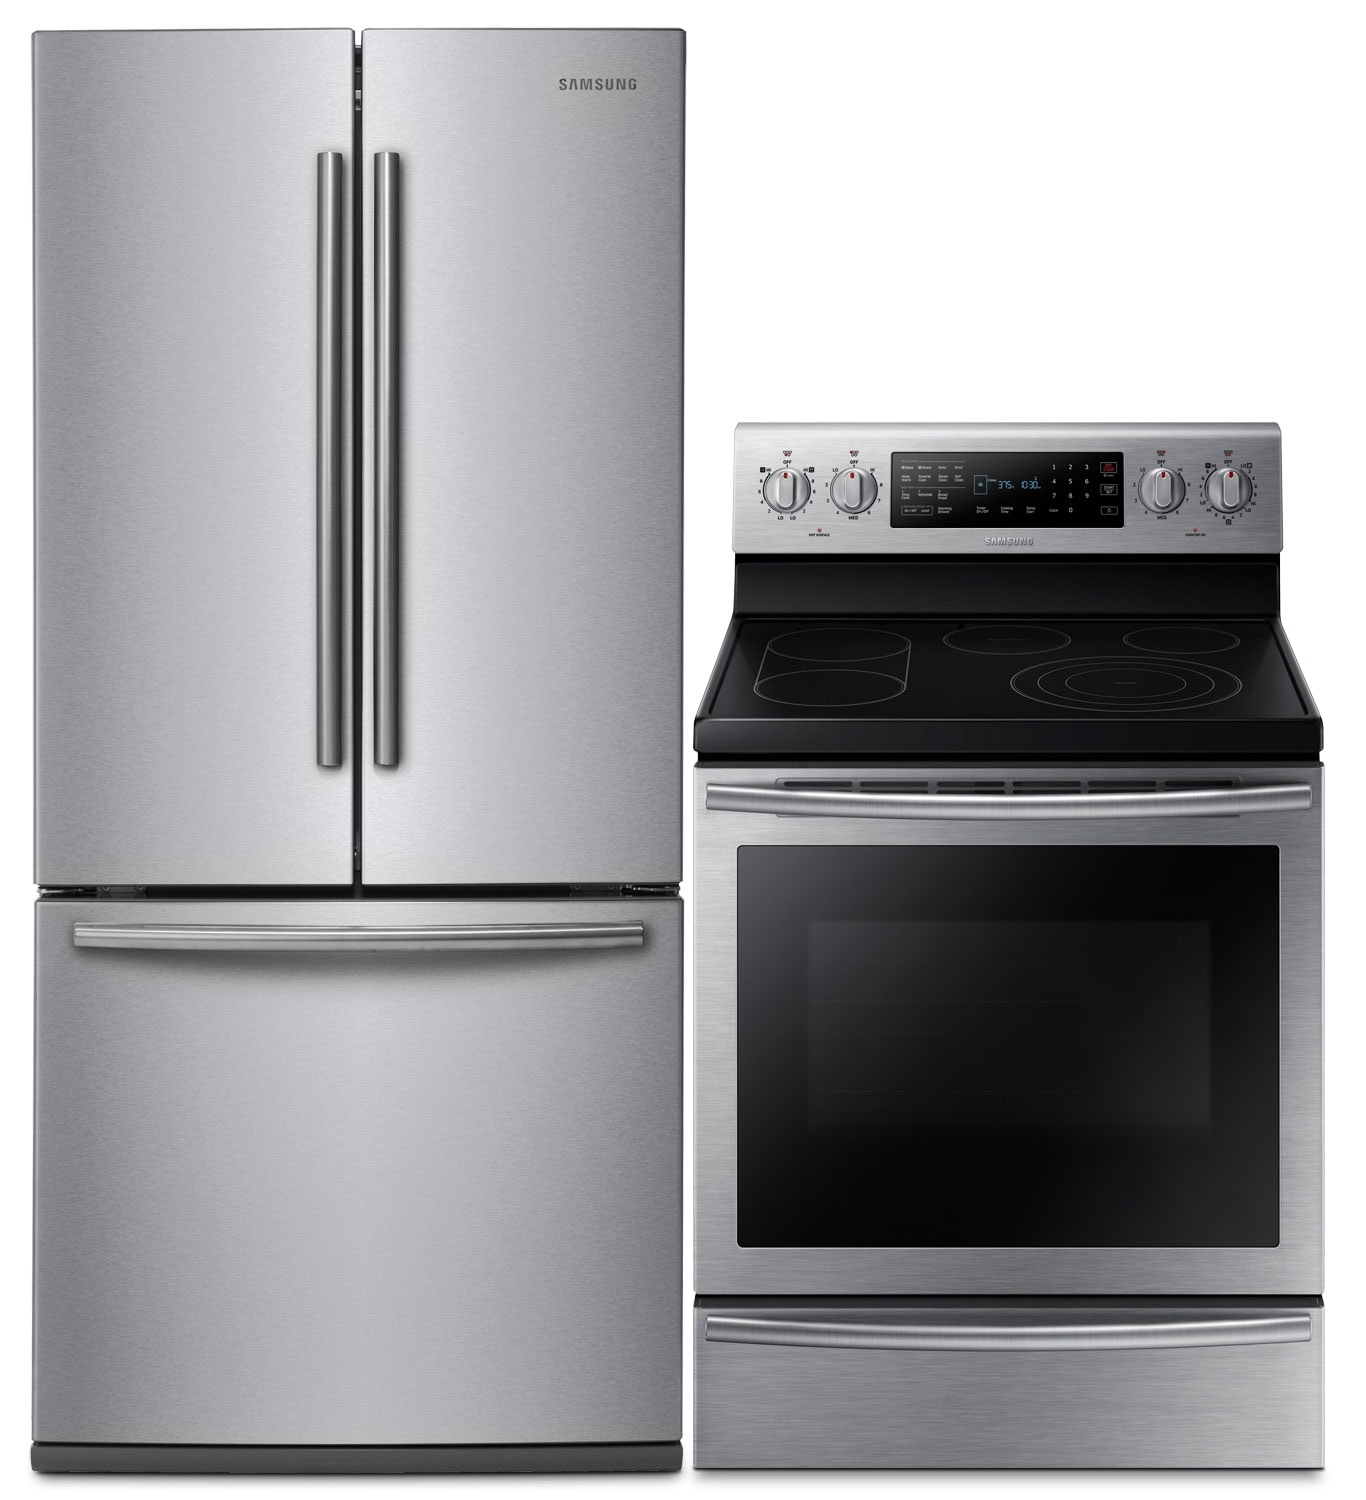 Refrigerators and Freezers - Samsung 22 Cu. Ft. Refrigerator and 5.9 Cu. Ft. Electric Convection Range – Stainless Steel